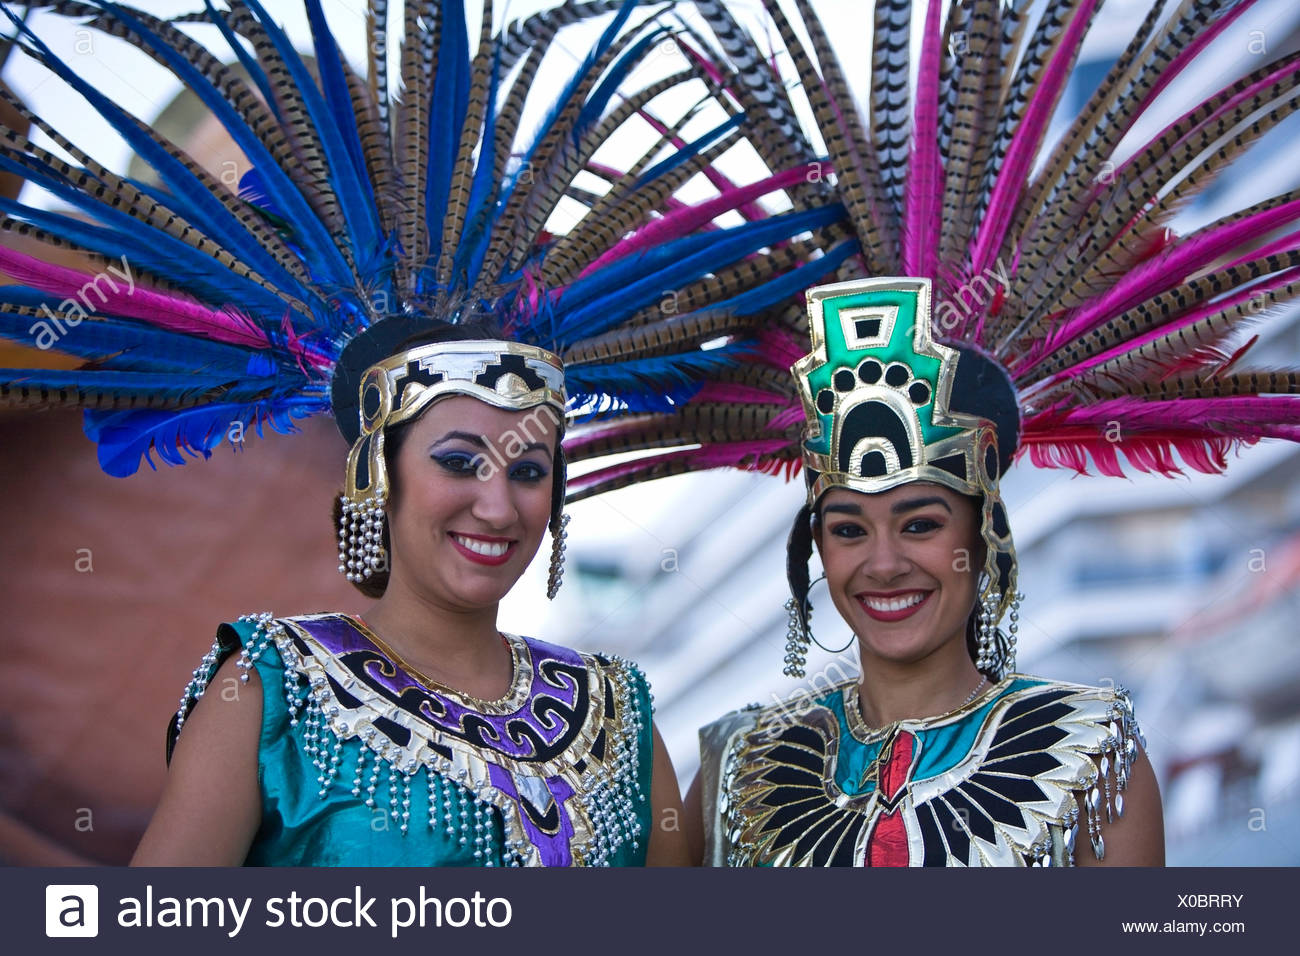 Two women in Aztec outfits, wearing feather headdress with Pheasant feathers, Cruise Ship Terminal; Mazatlan, Sinaloa, Mexico - Stock Image